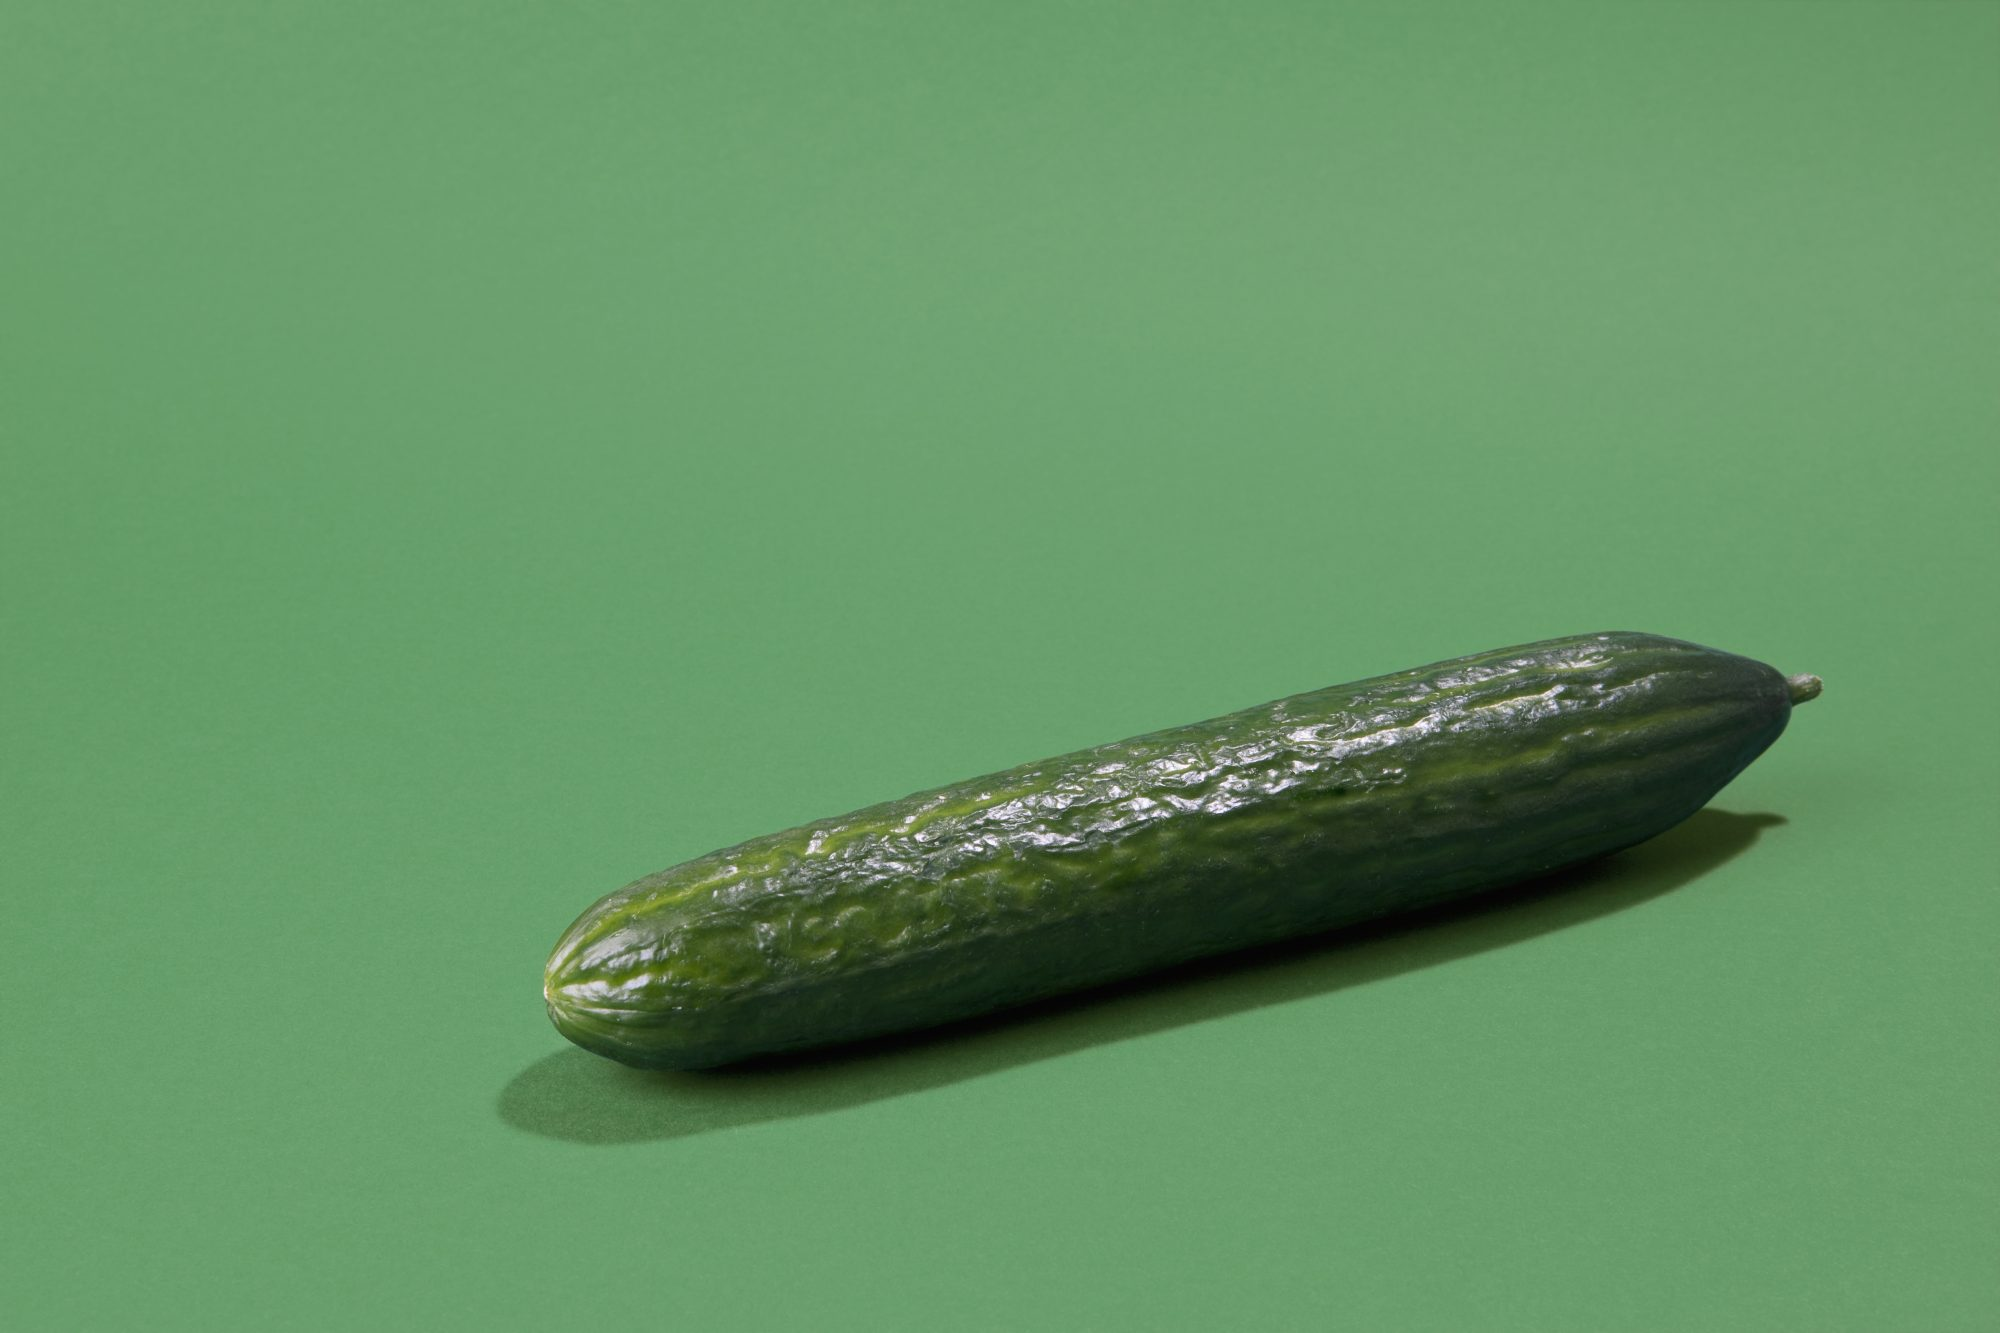 Cucumber on green background Getty 5/22/20